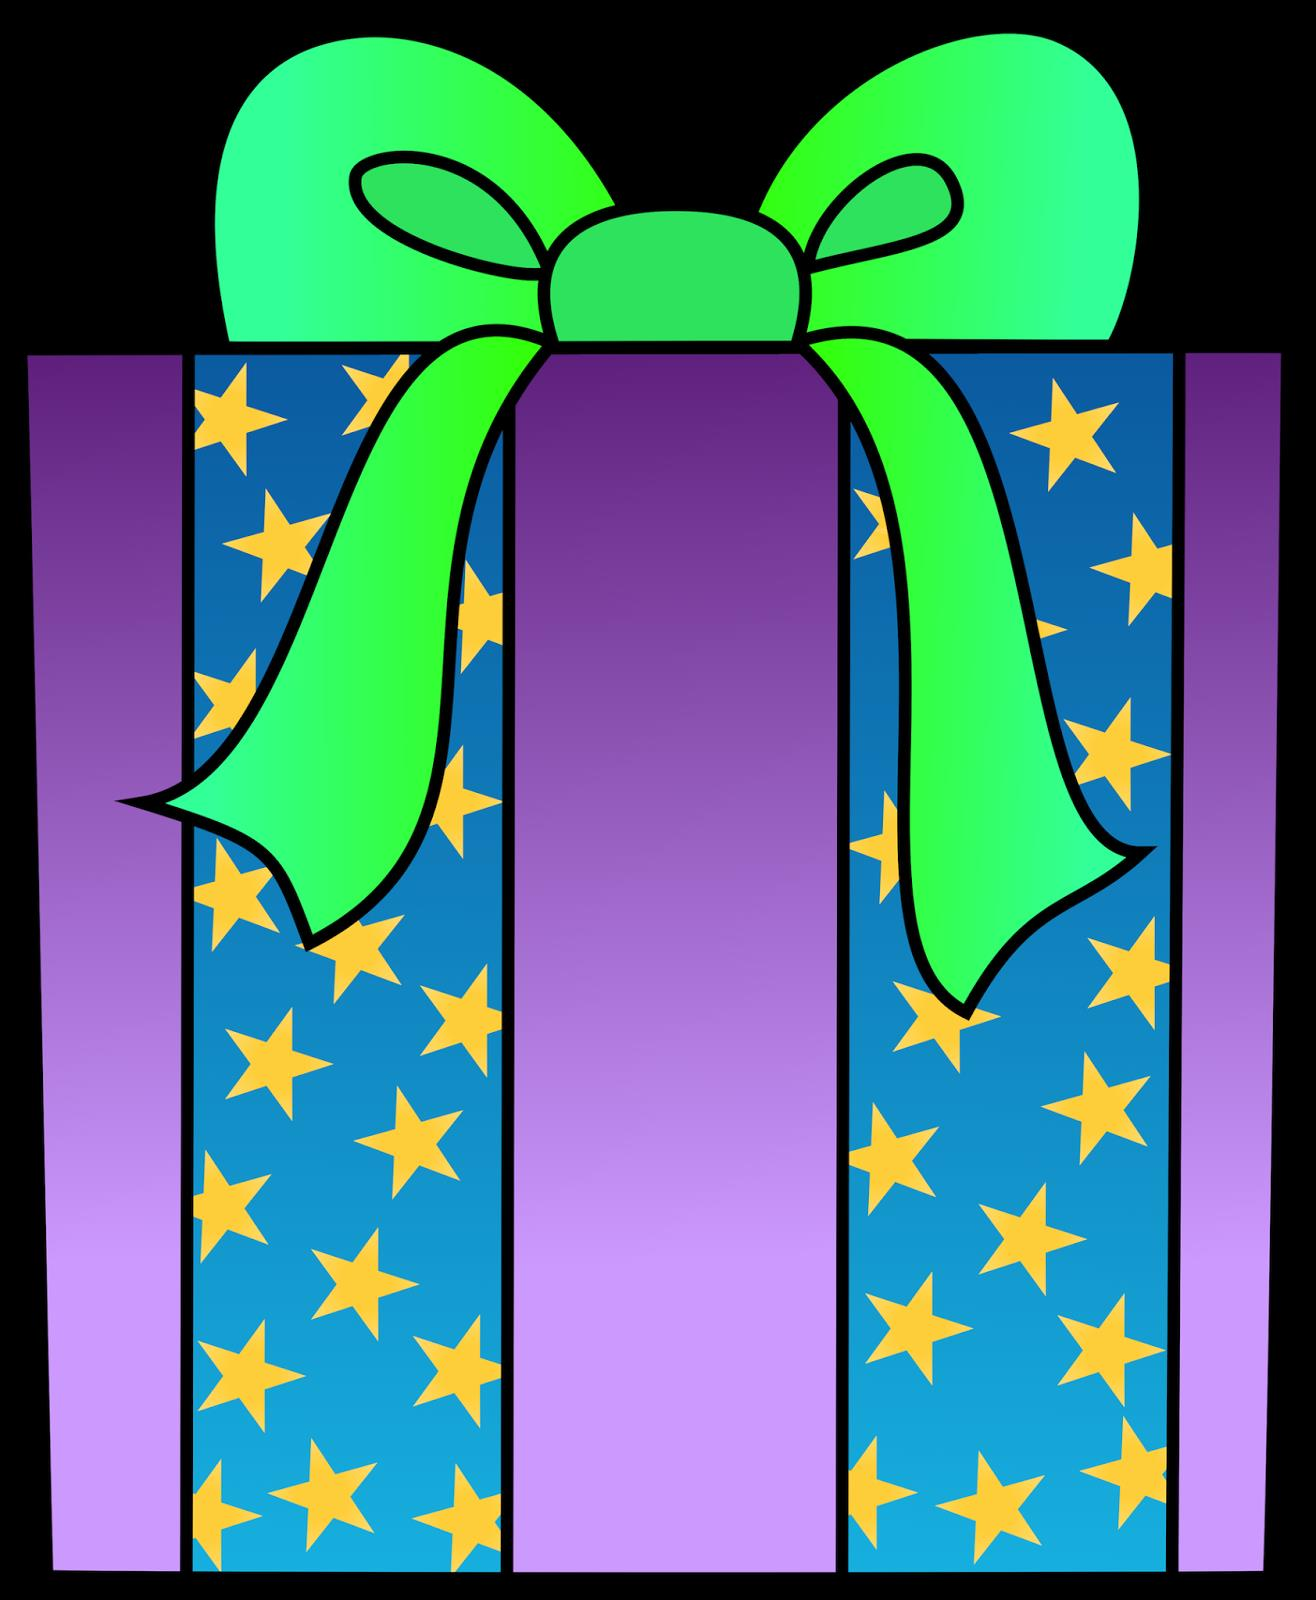 free clipart birthday presents ; Happy-birthday-present-clipart-free-images-2